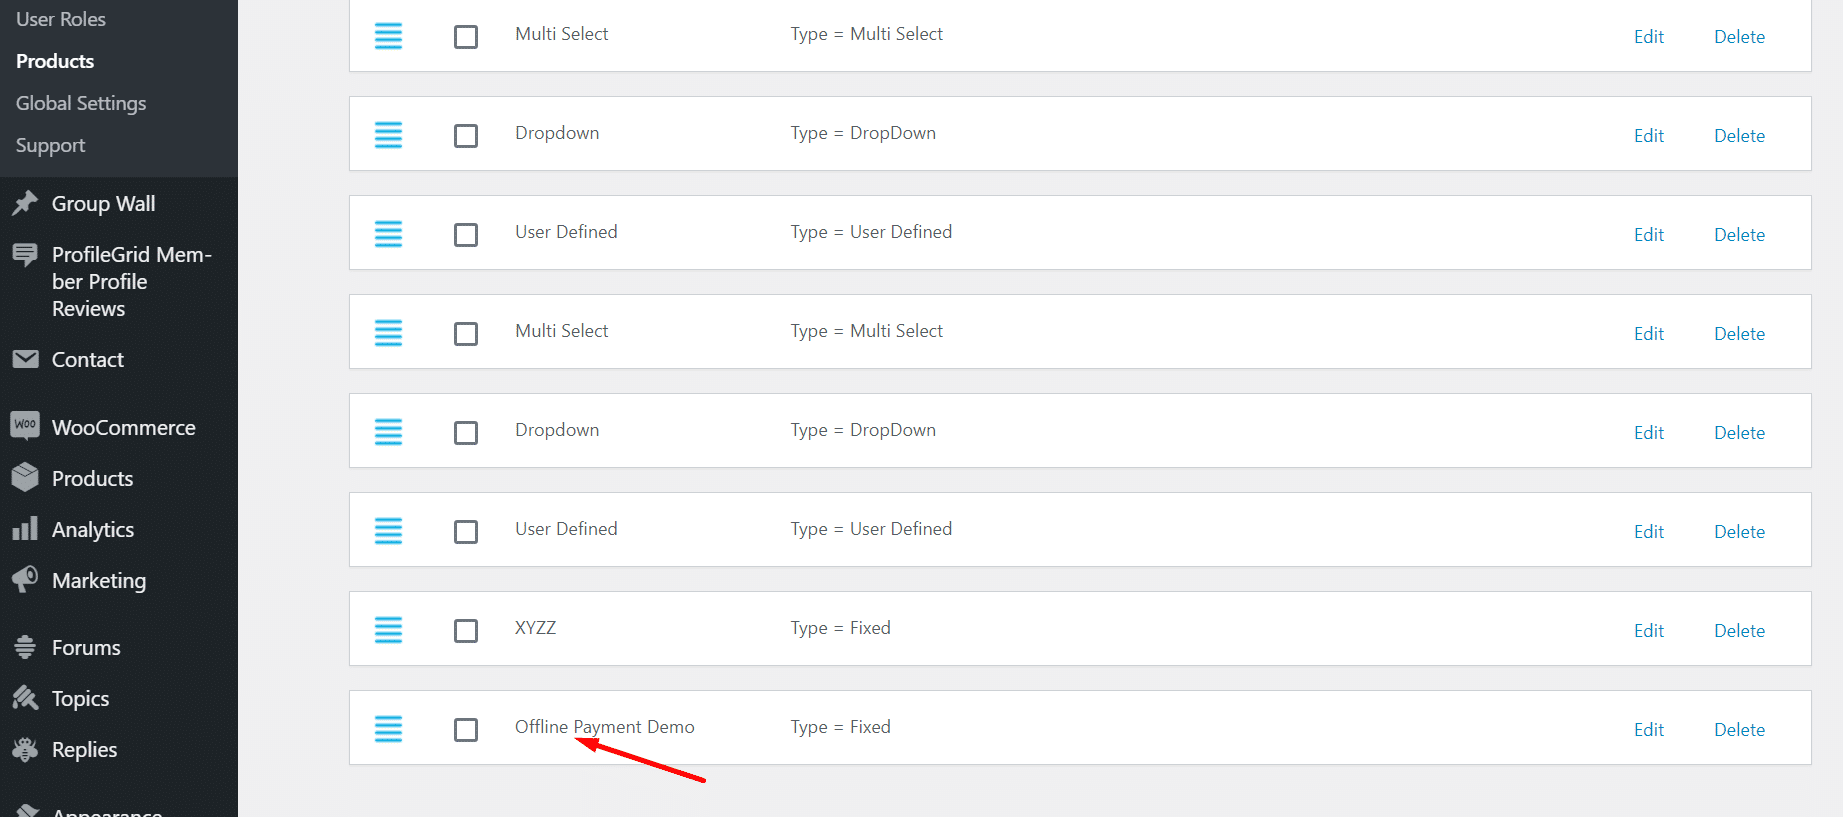 Allow Users to Specify Quantity